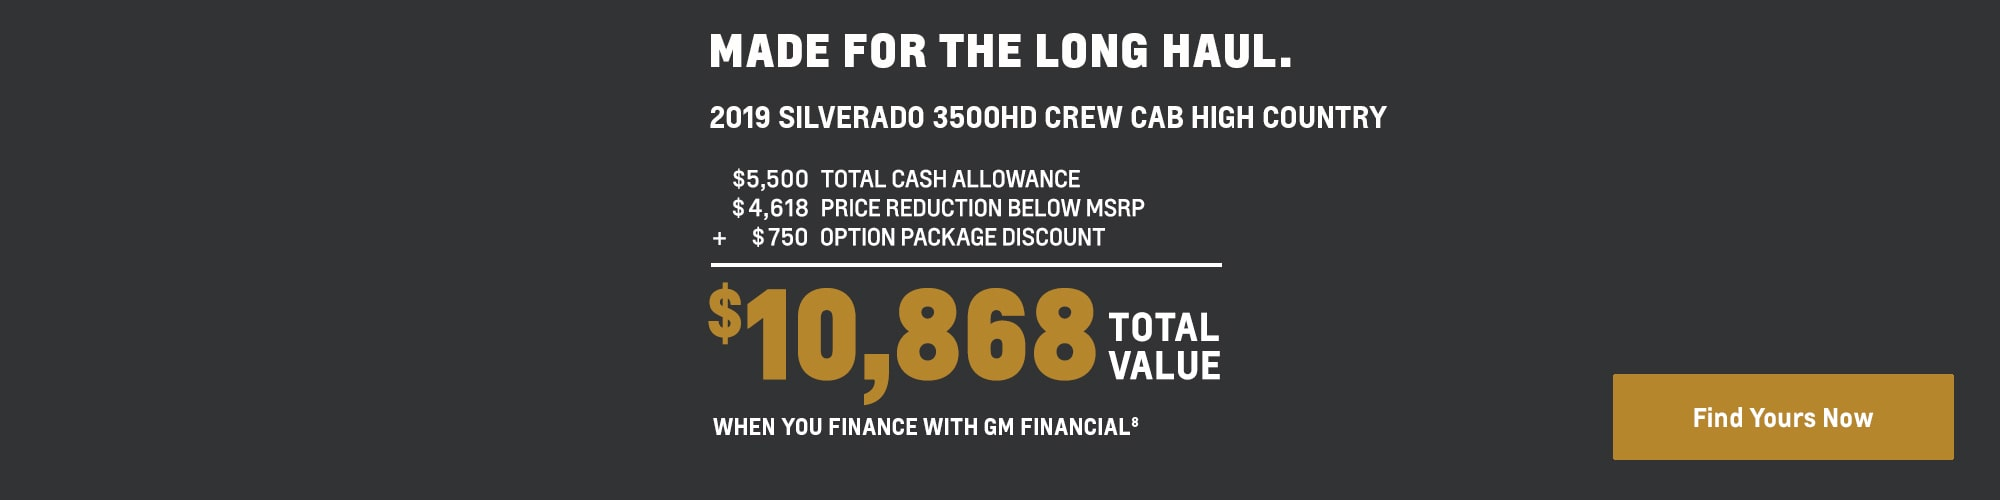 2019 Silverado 3500HD: $10,868 Total Value